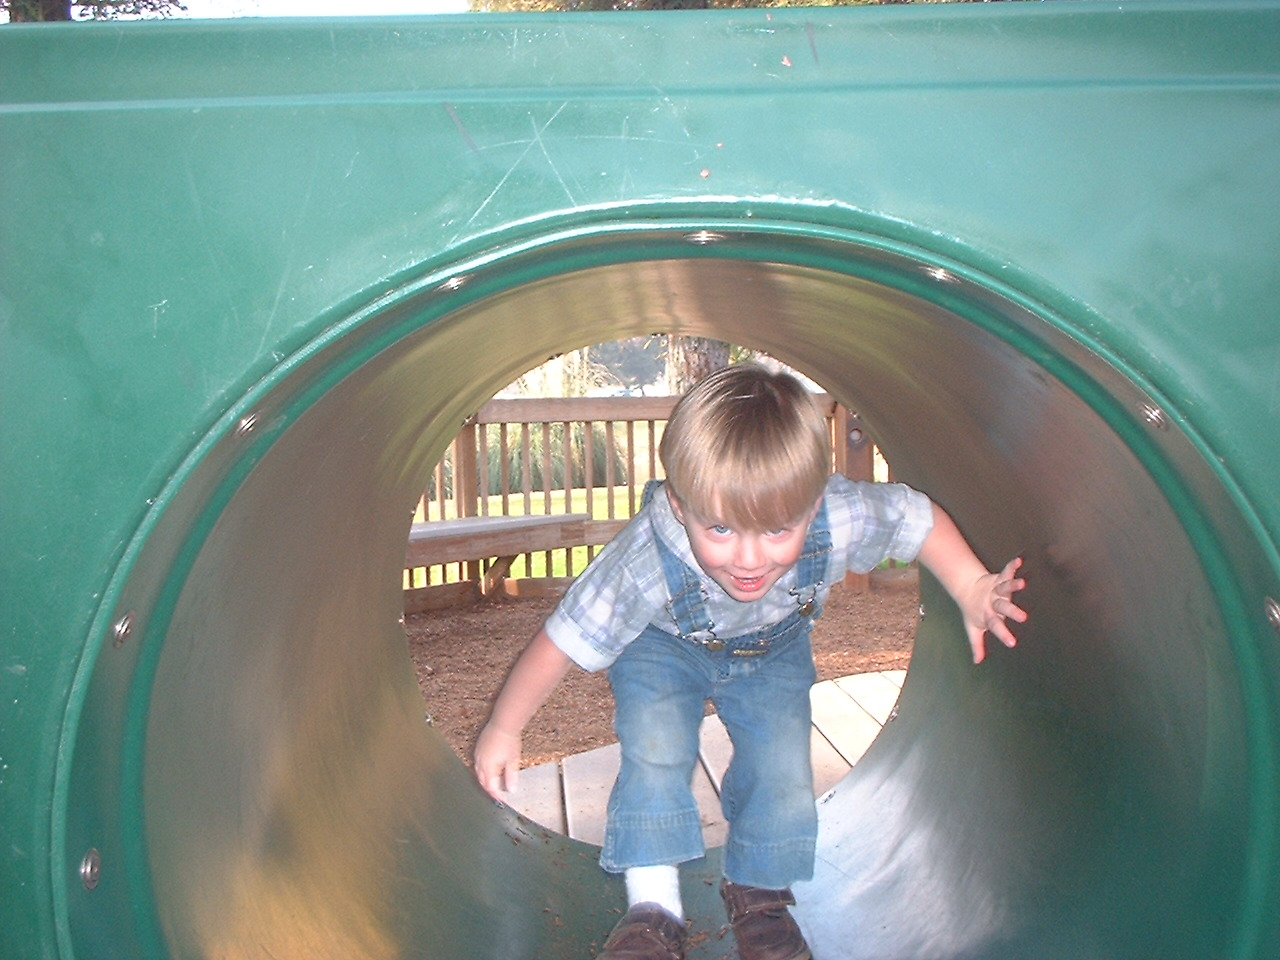 child playing on playground structure